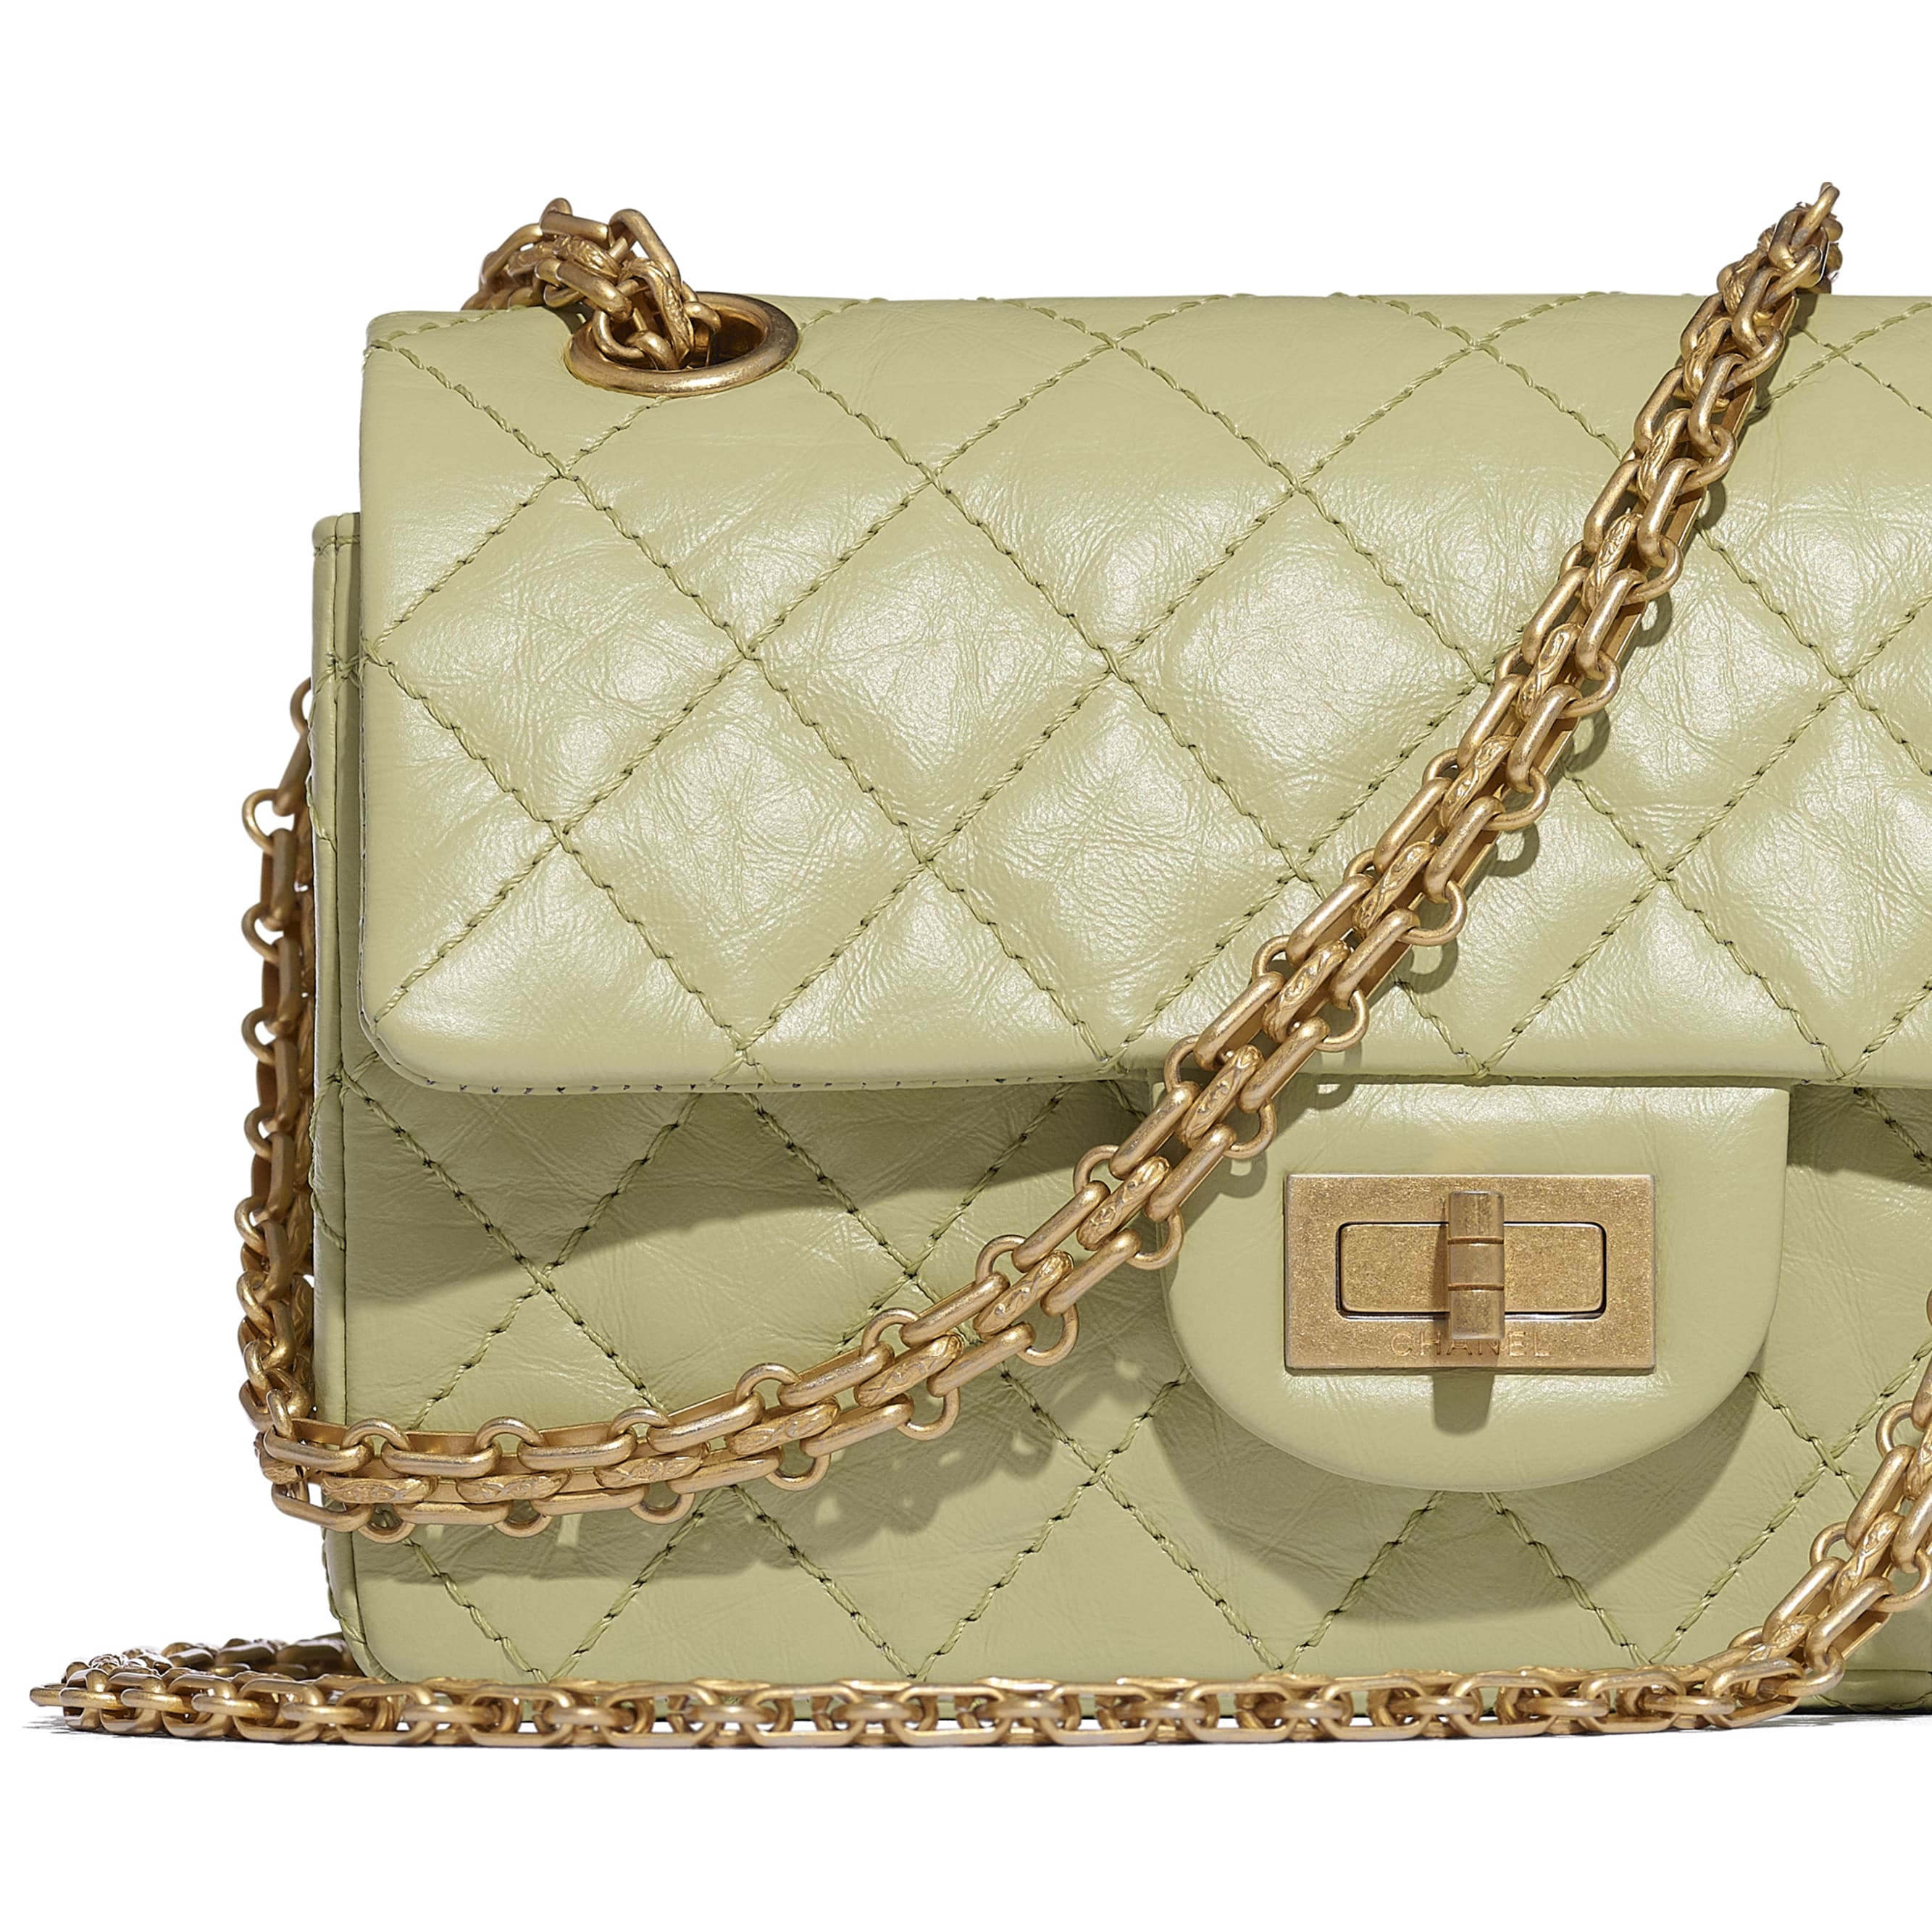 Mini 2.55 Handbag - Green - Aged Calfskin & Gold-Tone Metal - CHANEL - Extra view - see standard sized version